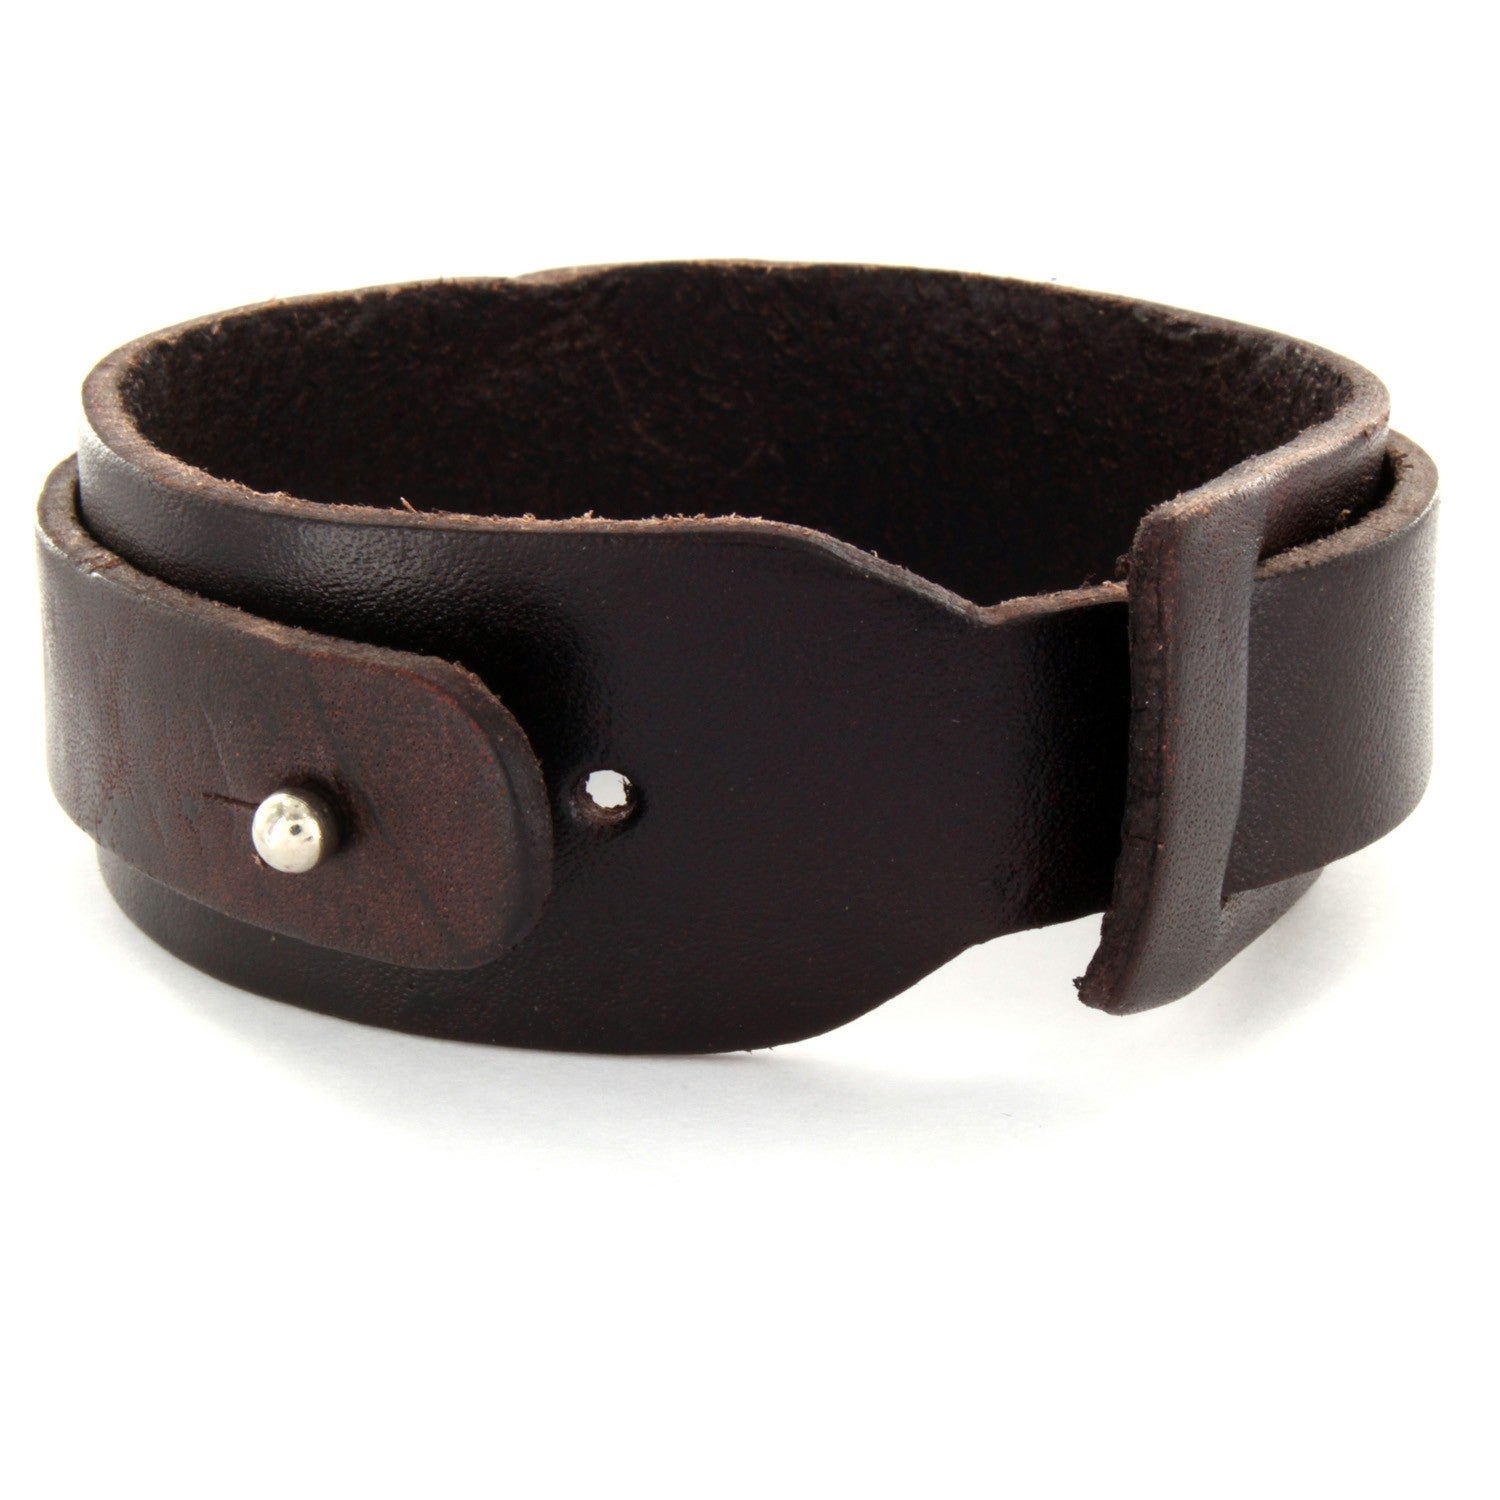 Men S Brown Leather Tribal Design Layered Cuff Bracelet Free Shipping On Orders Over 45 6359642